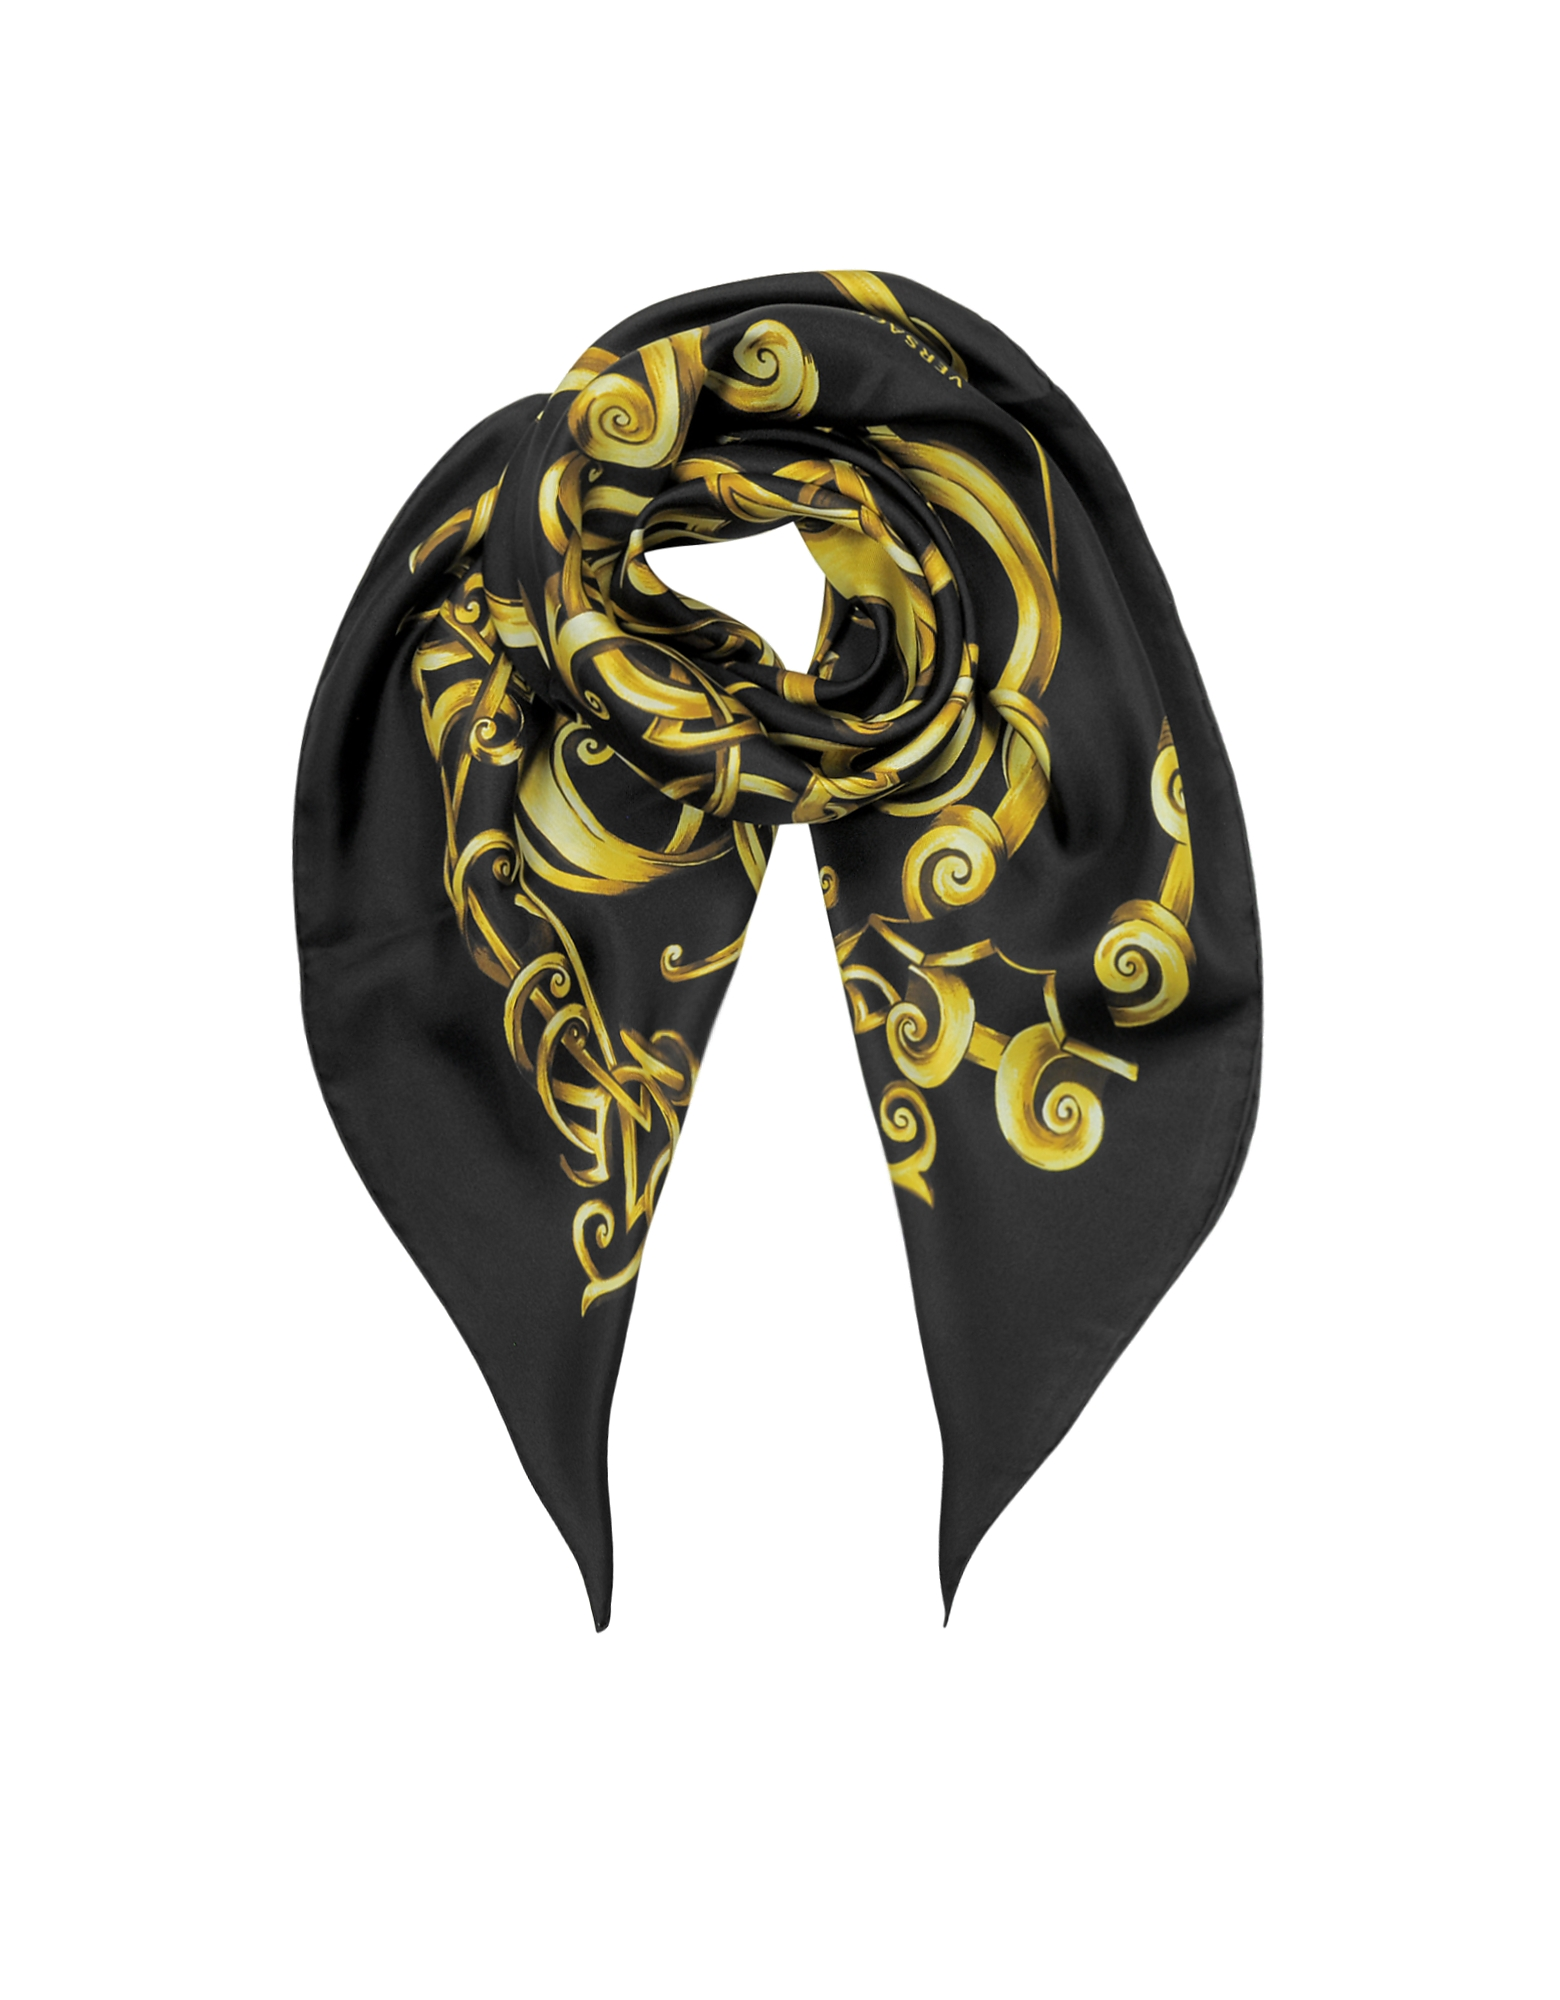 Black and Gold Heritage Barocco Print Twill Silk Square Scarf